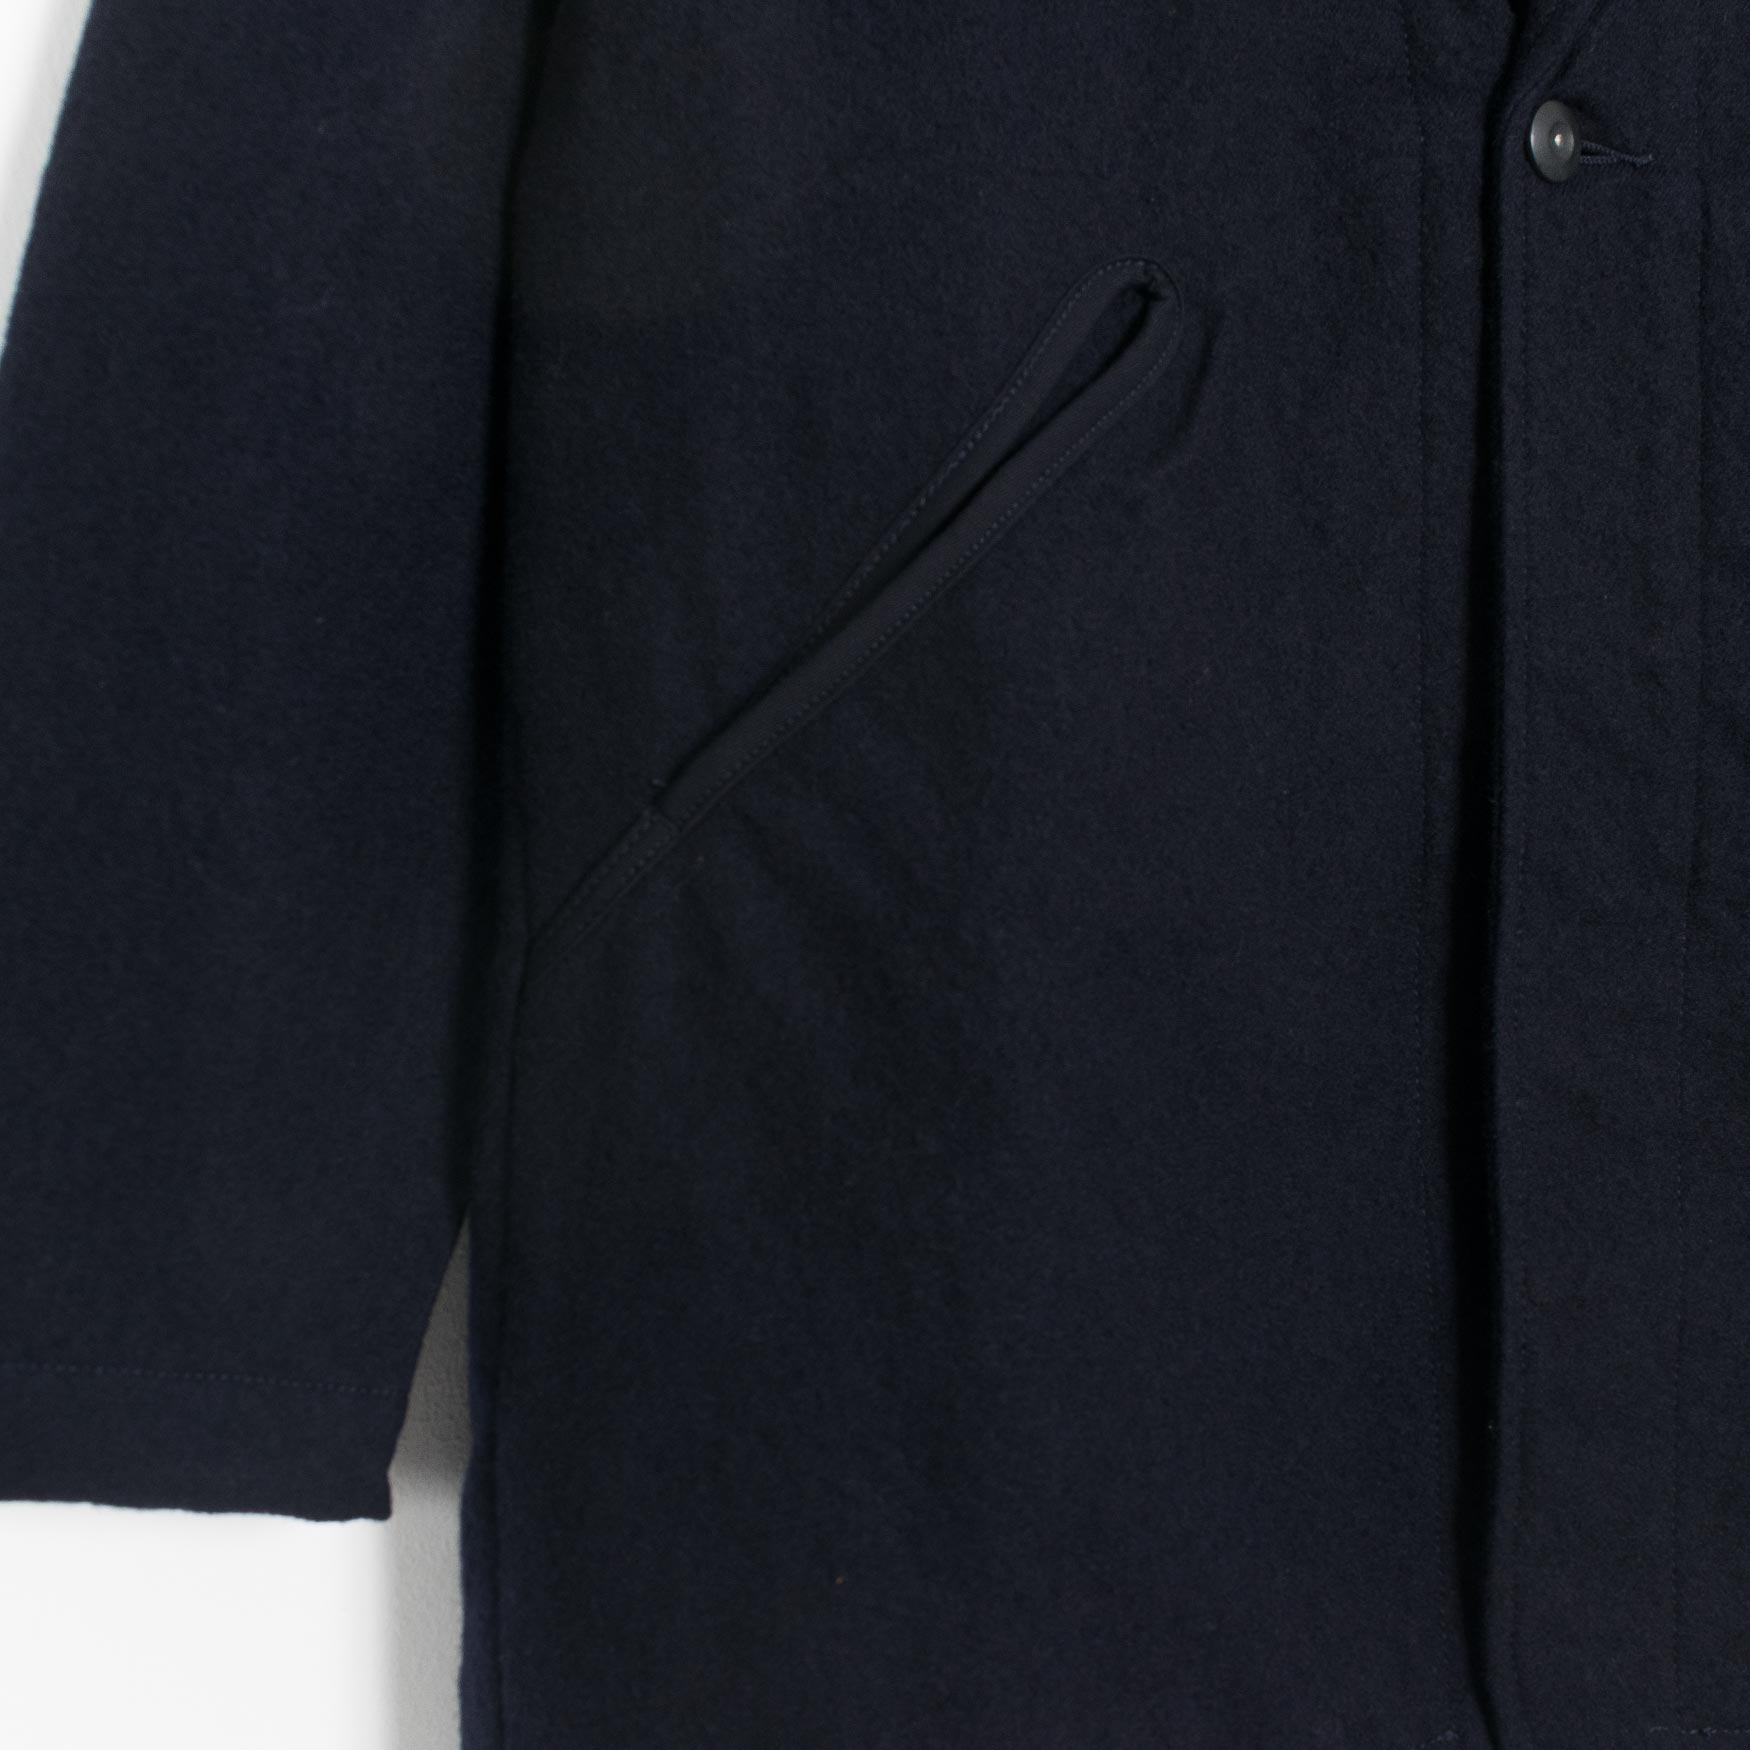 Garbstore Simple Wren Coat - Navy  - CARTOCON